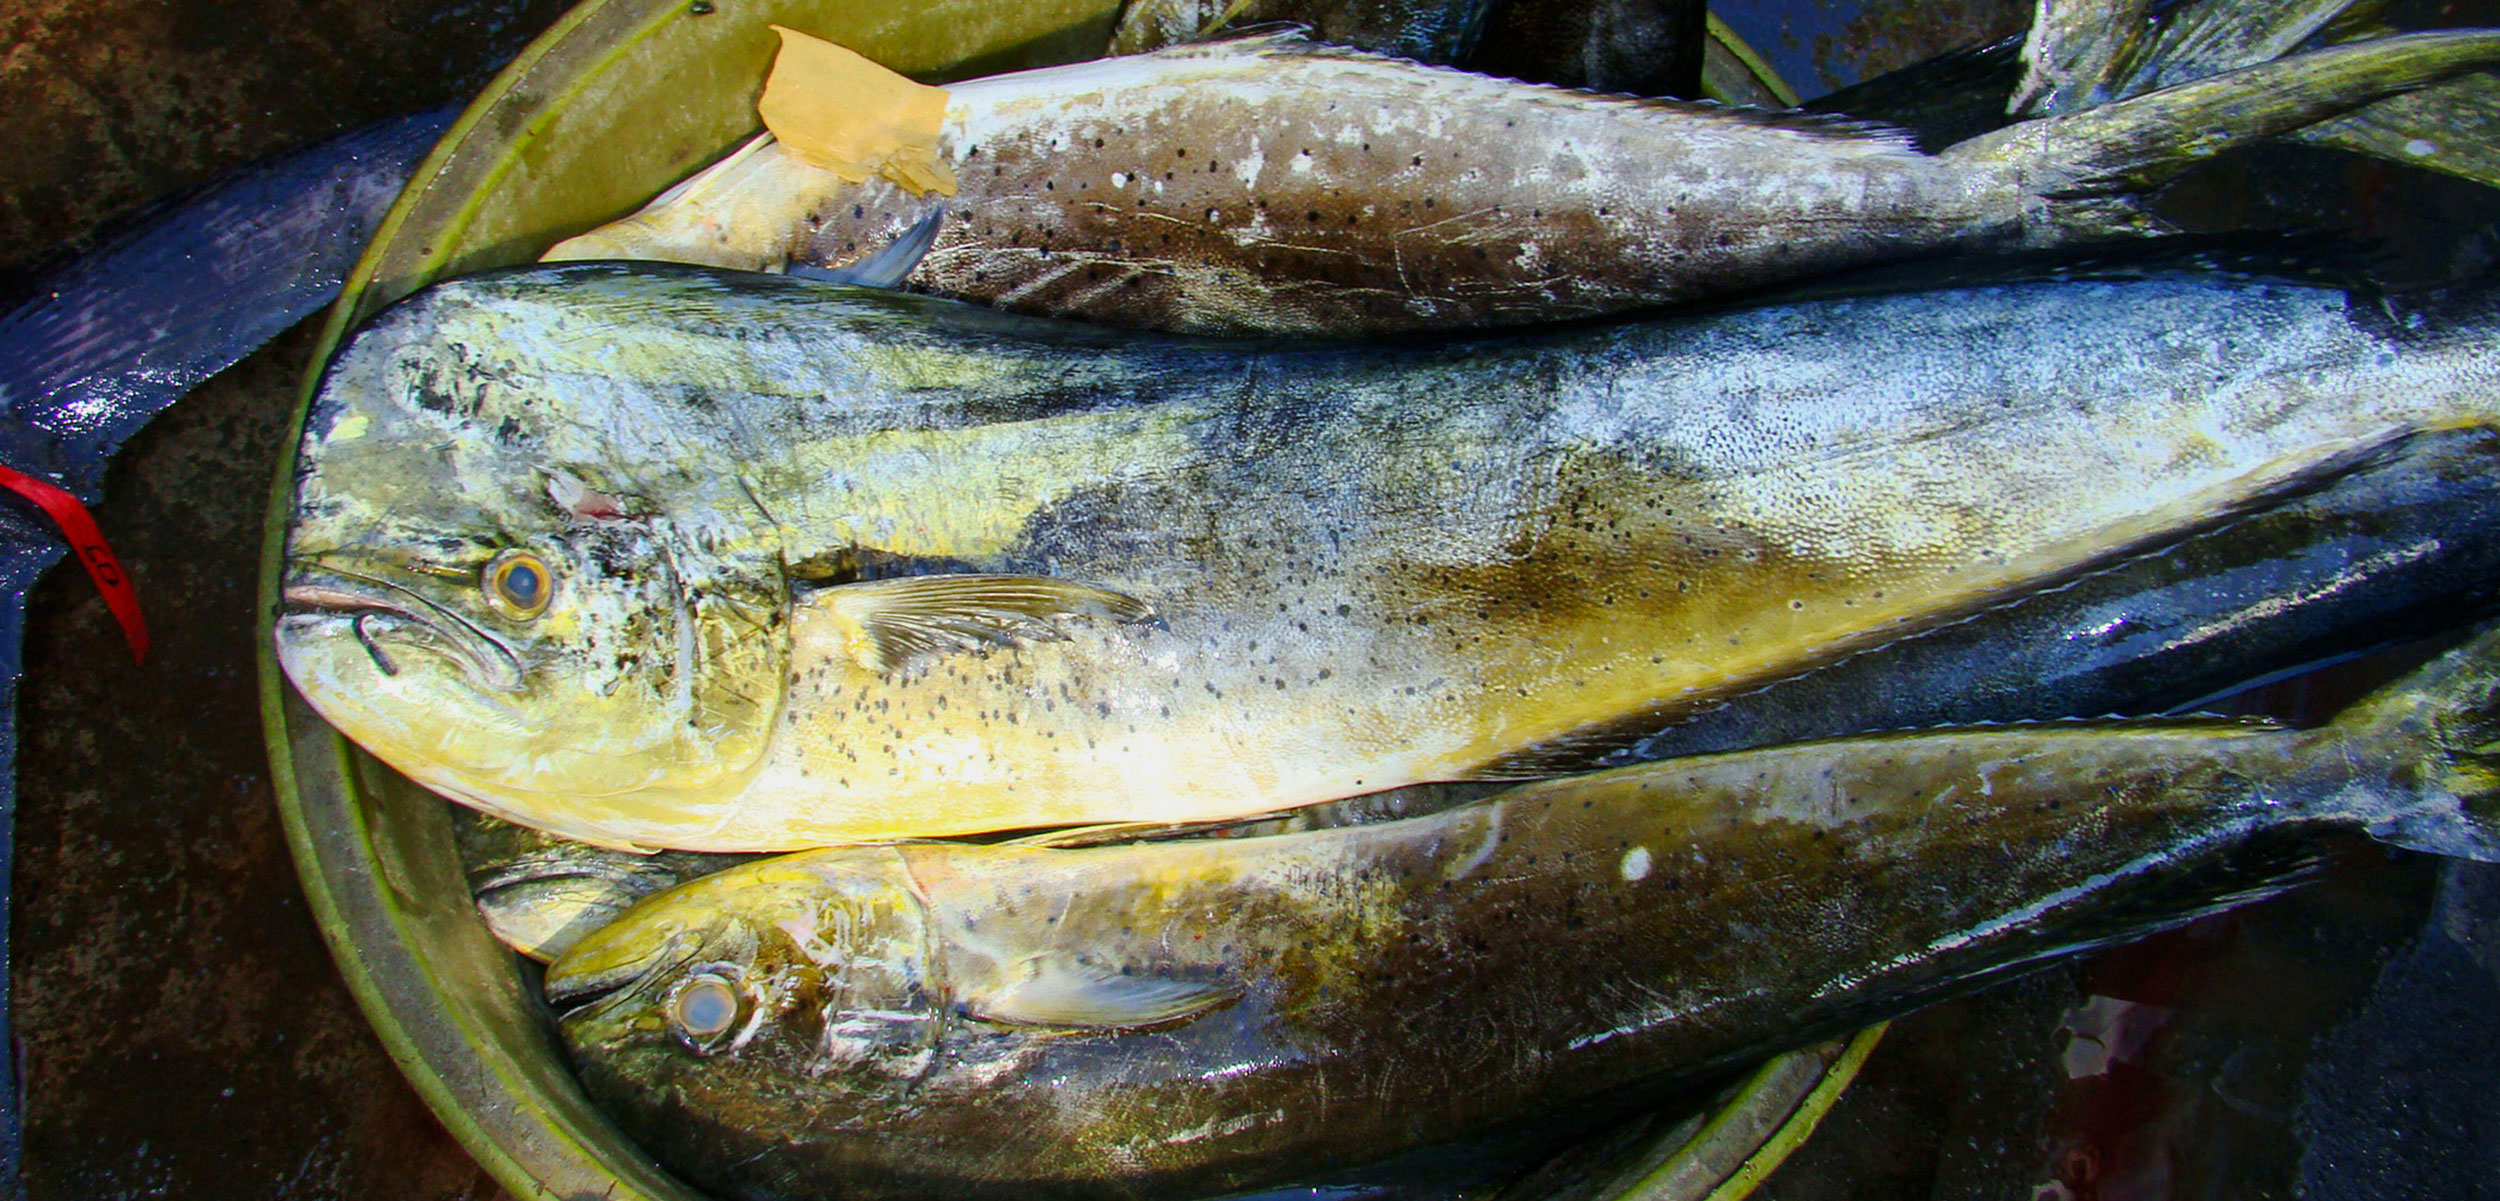 common dolphinfish—better known as mahi mahi or dorado